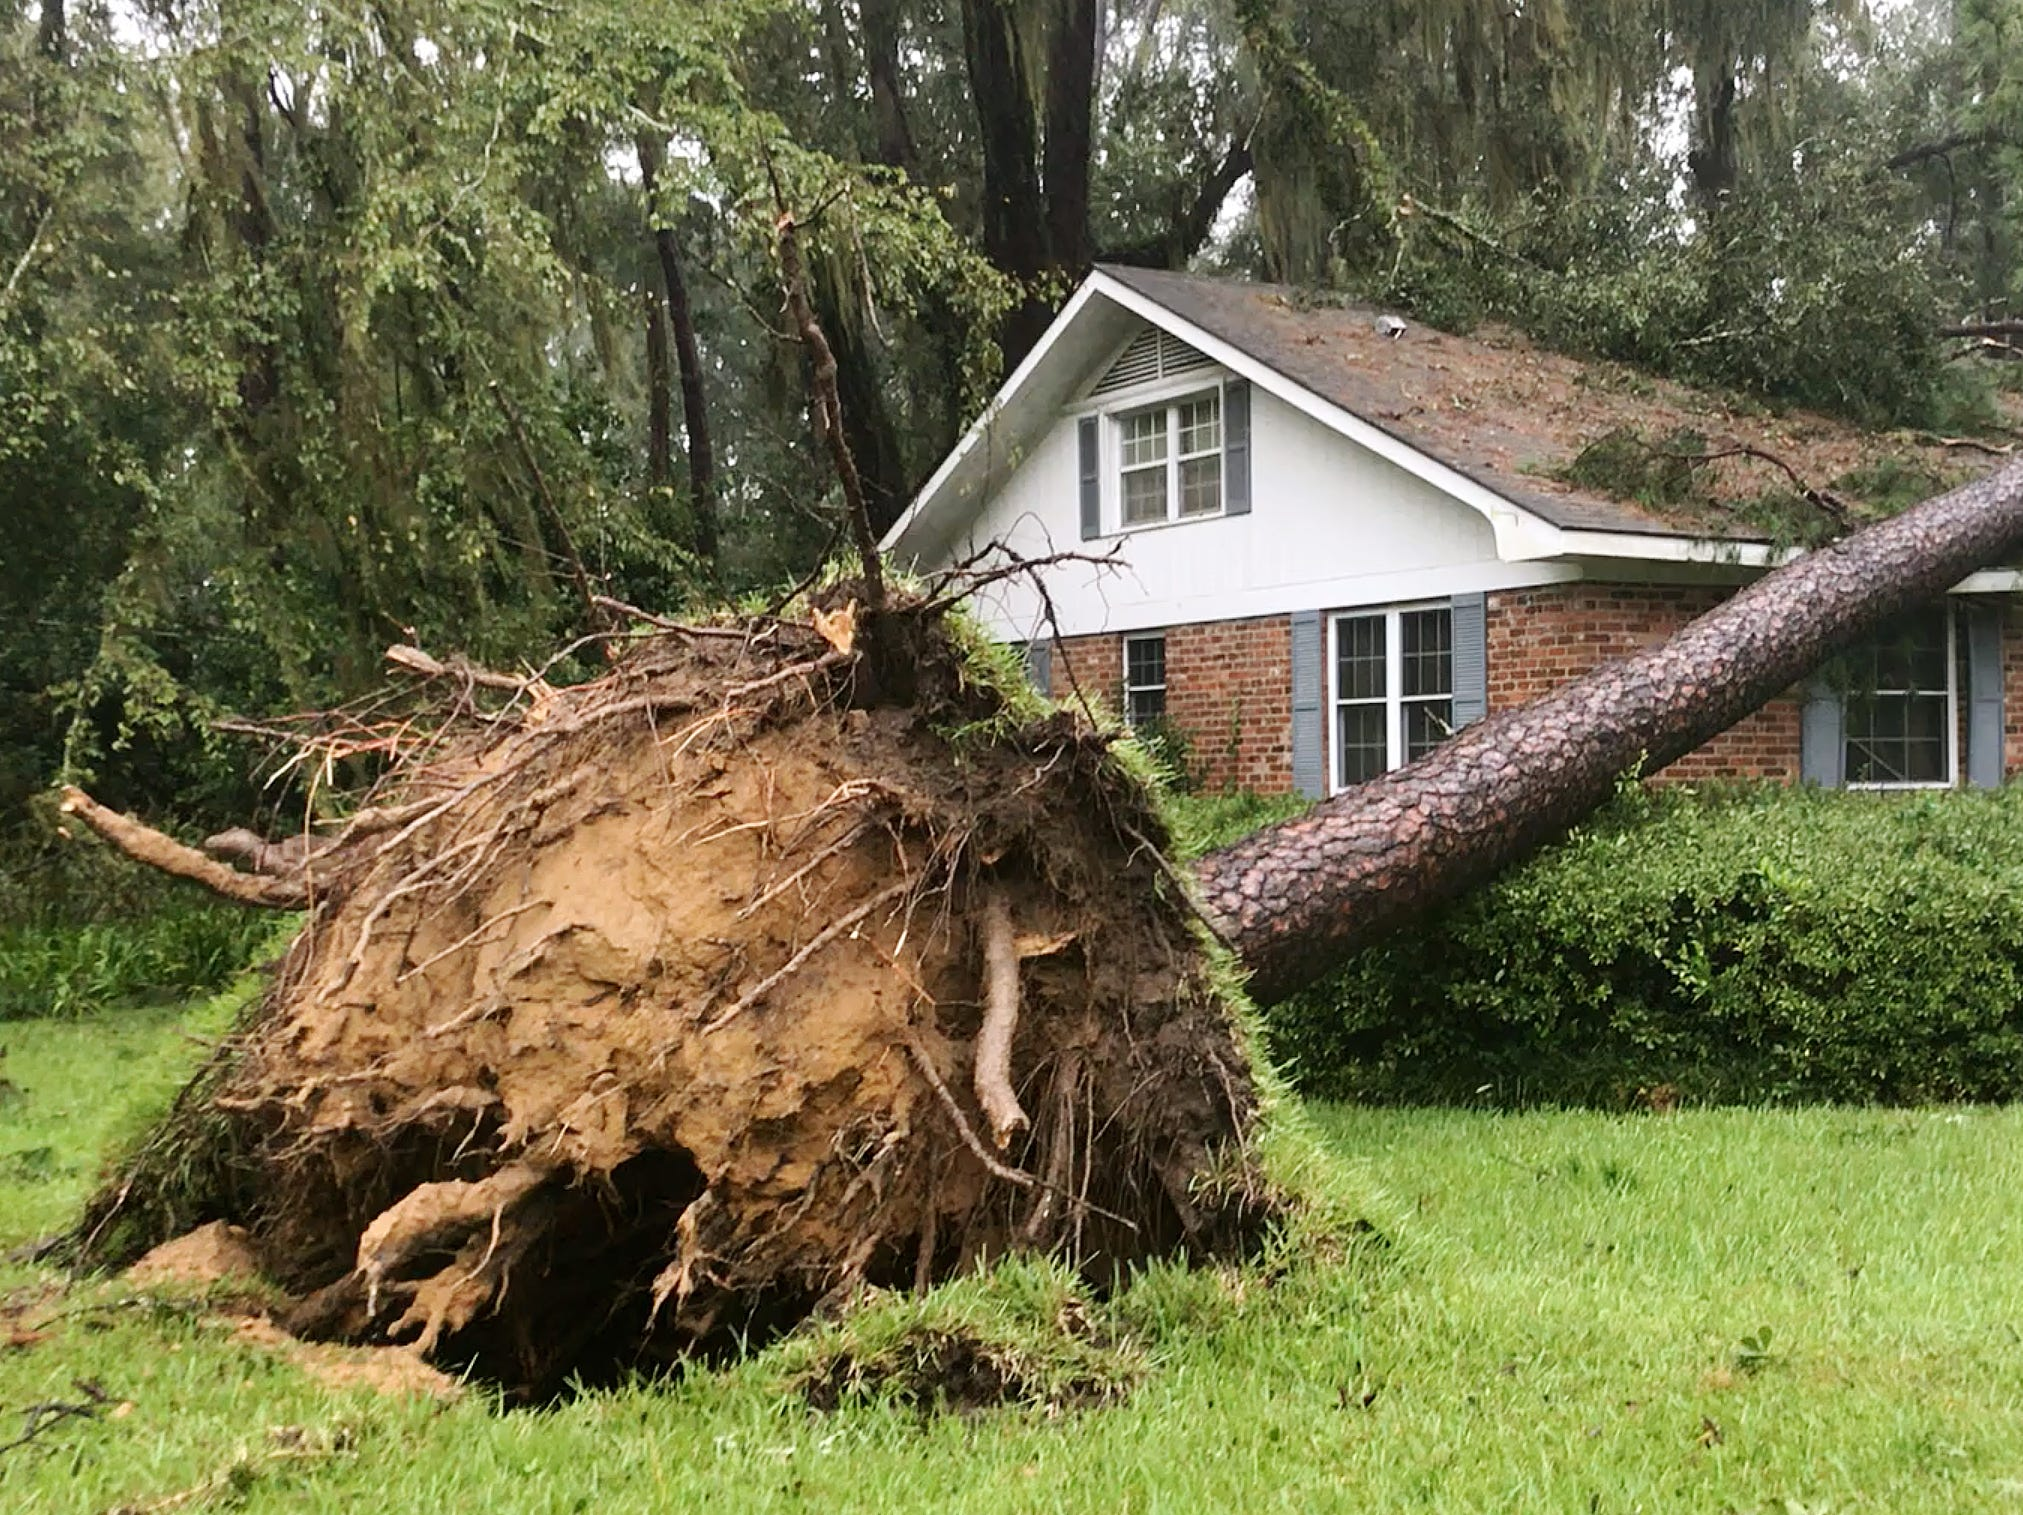 Hurricane Michael knocked down hundreds of trees on Wednesday (10/10/18) in Tallahassee, Fla.